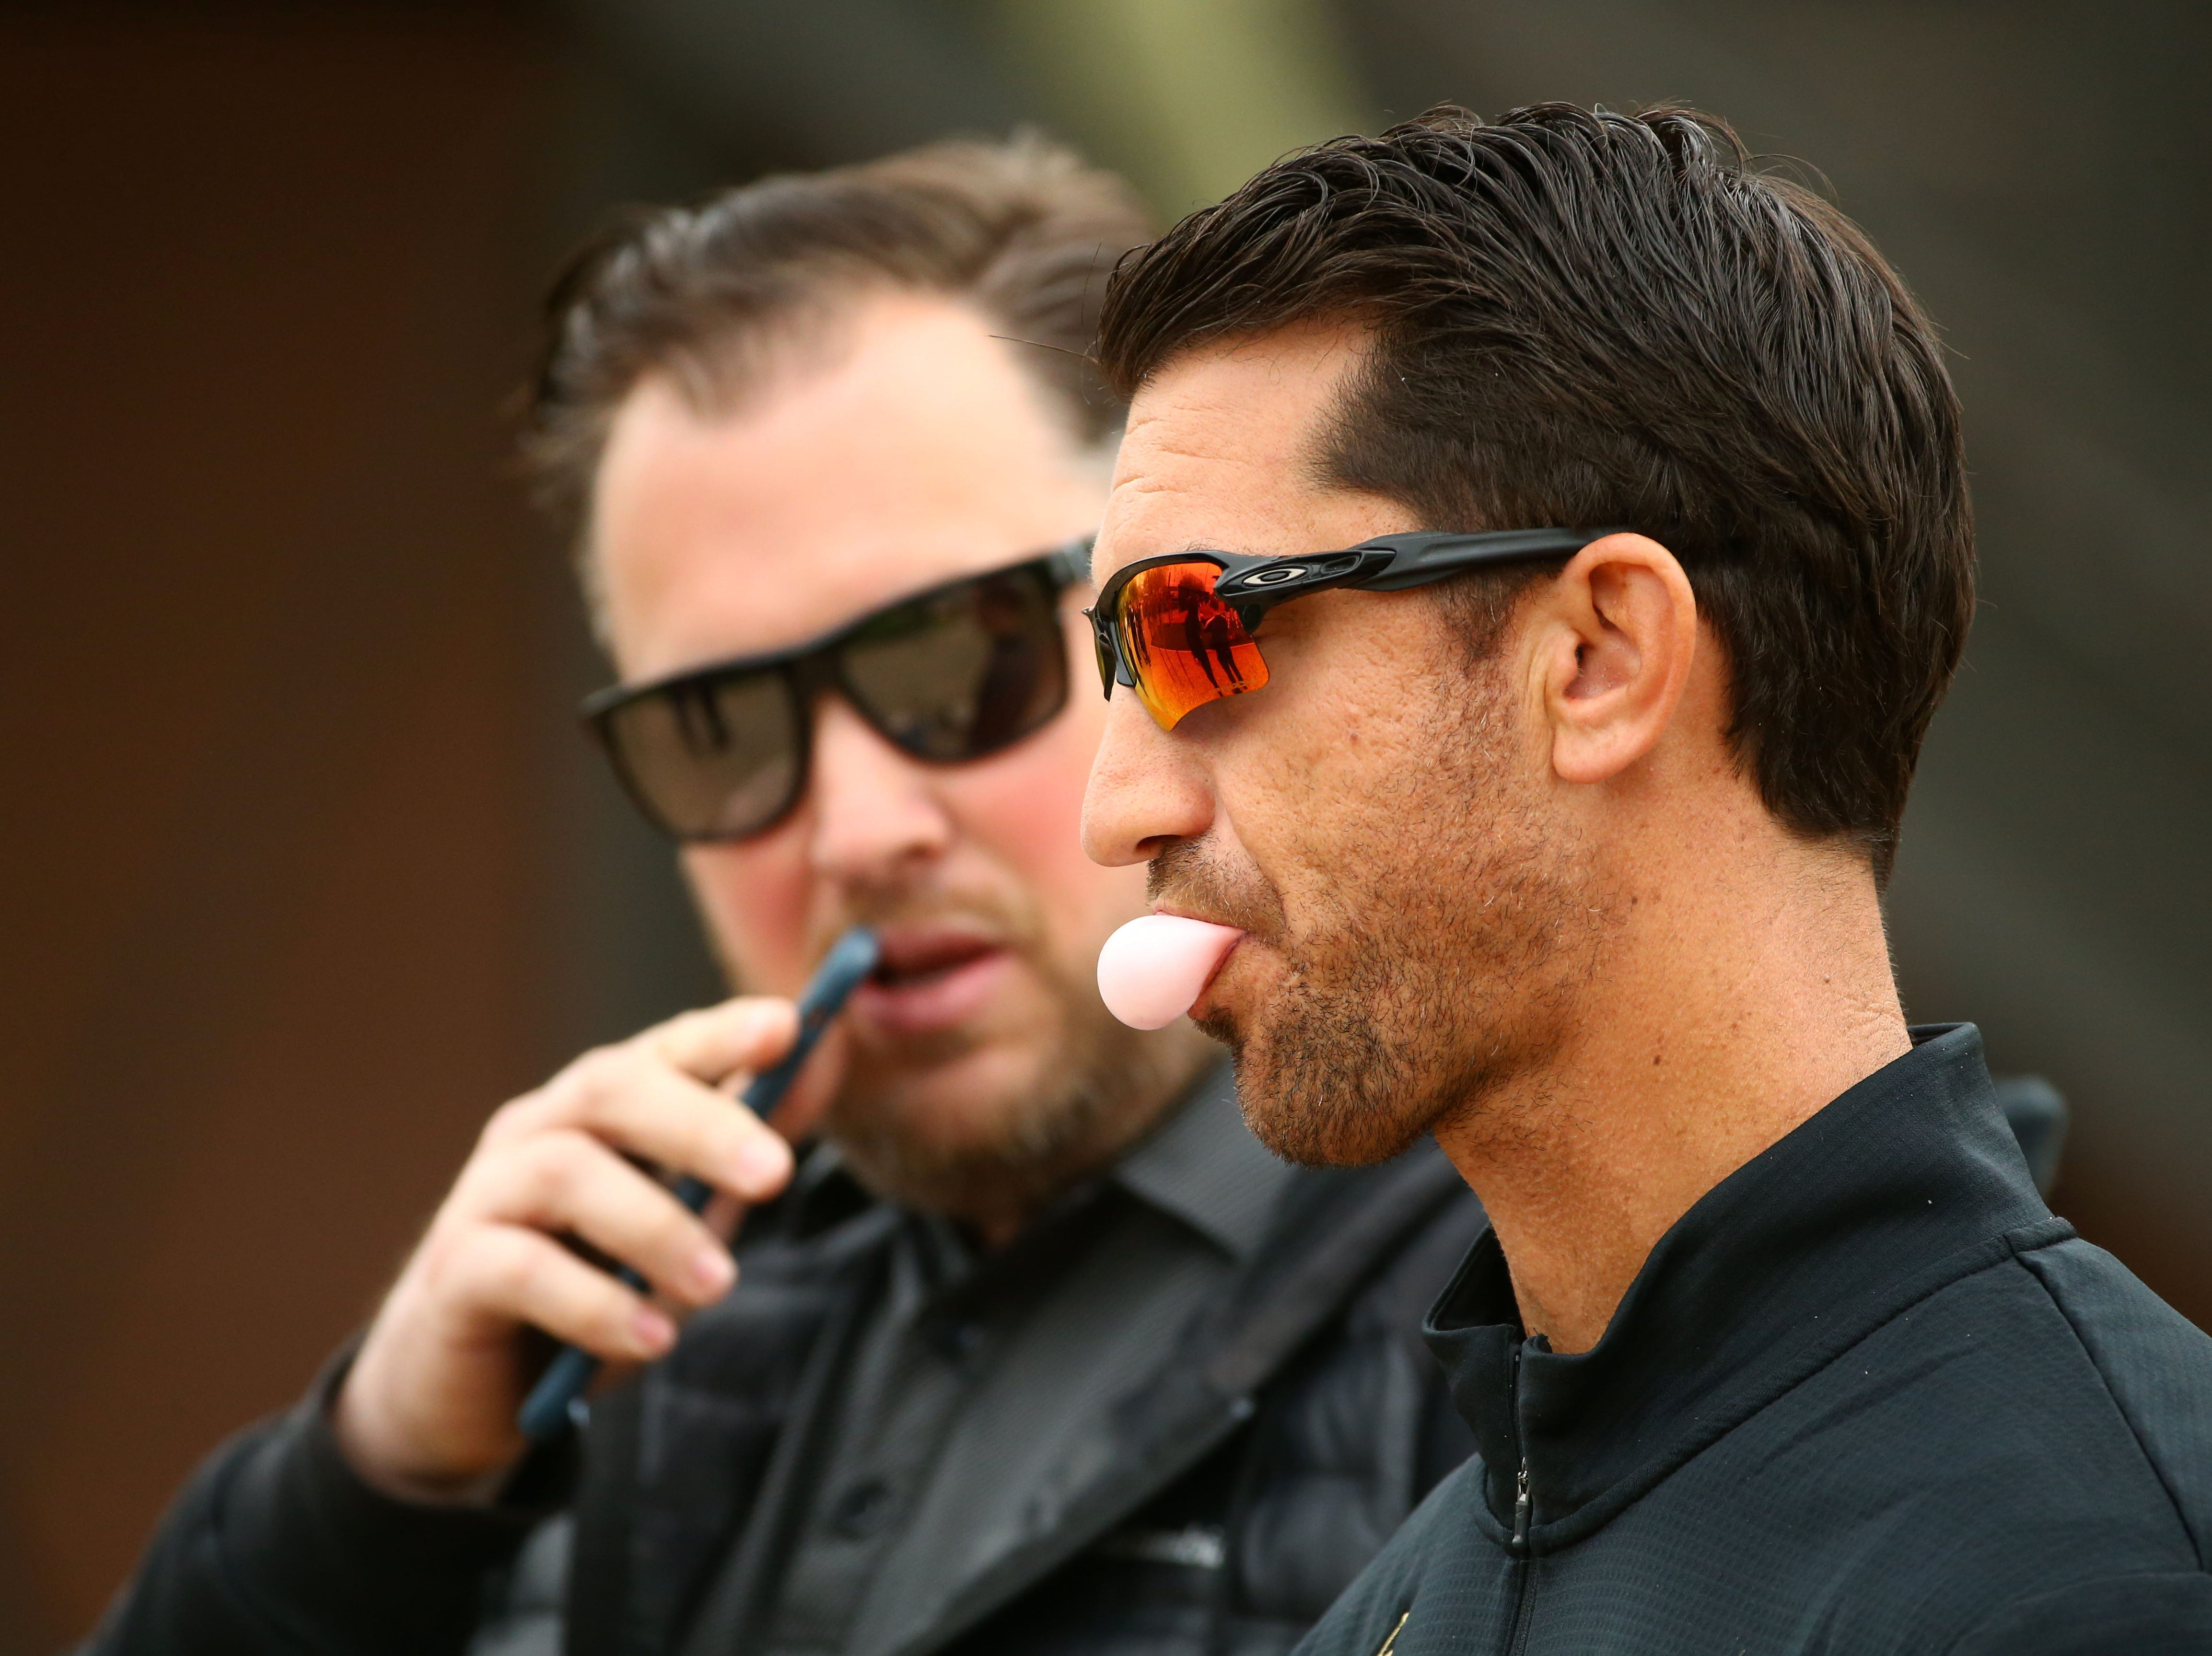 Arizona Diamondbacks general manager Mike Hazen blows a bubble during the first day of spring training workouts on Feb. 13 at Salt River Fields in Scottsdale.